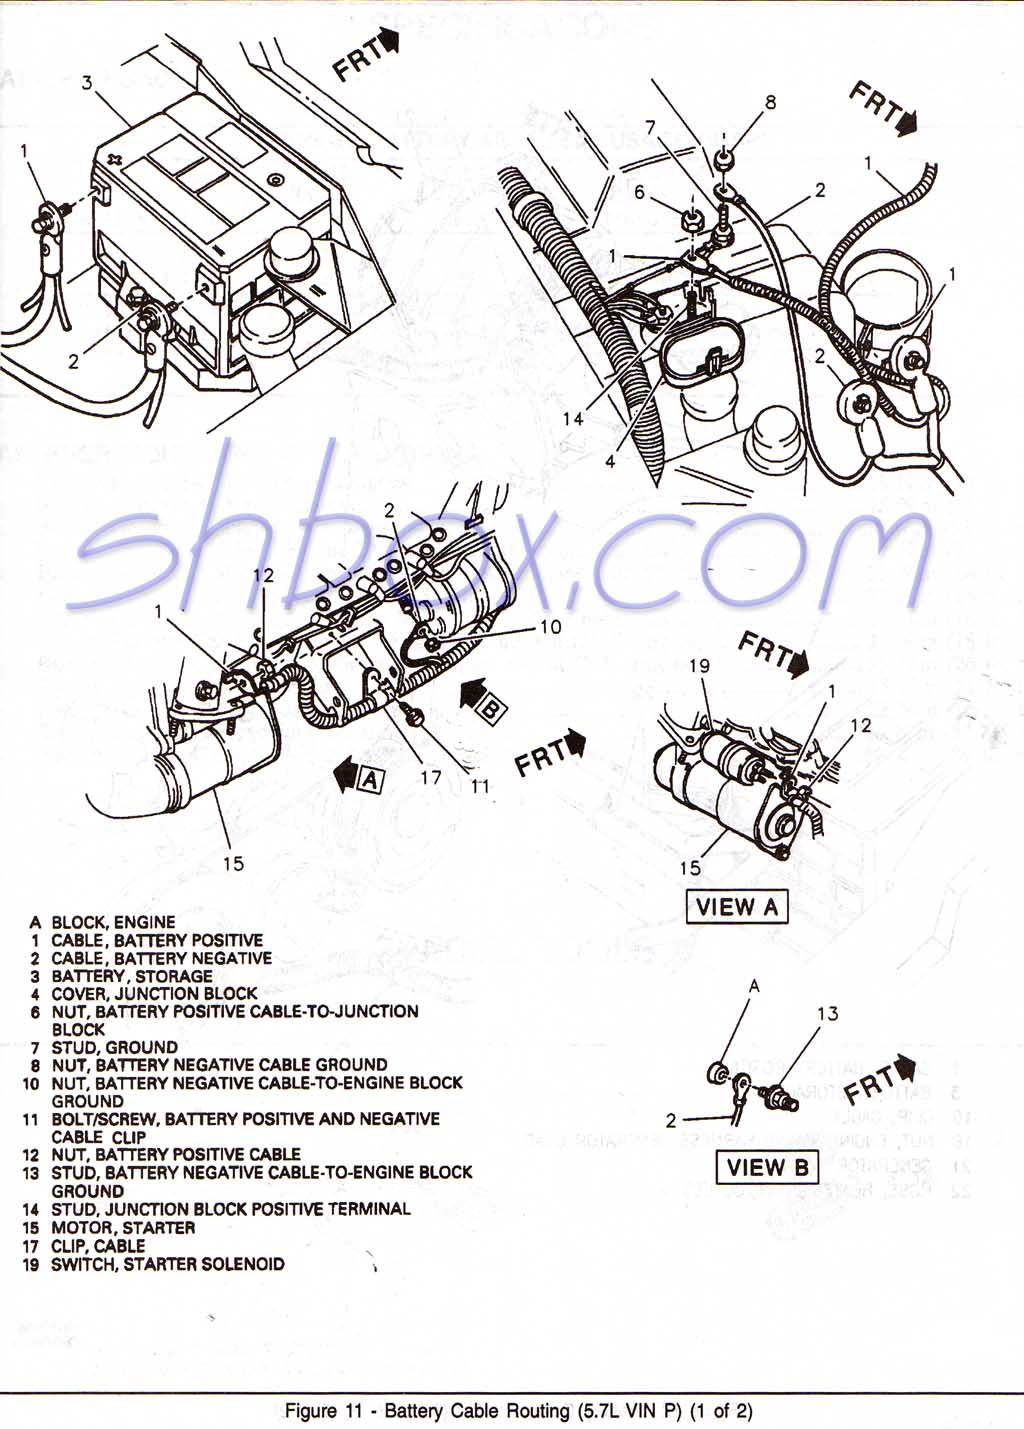 Crankshaft Sensor Wire Diagram For 2001 Honda Civic Dx Wiring Auto